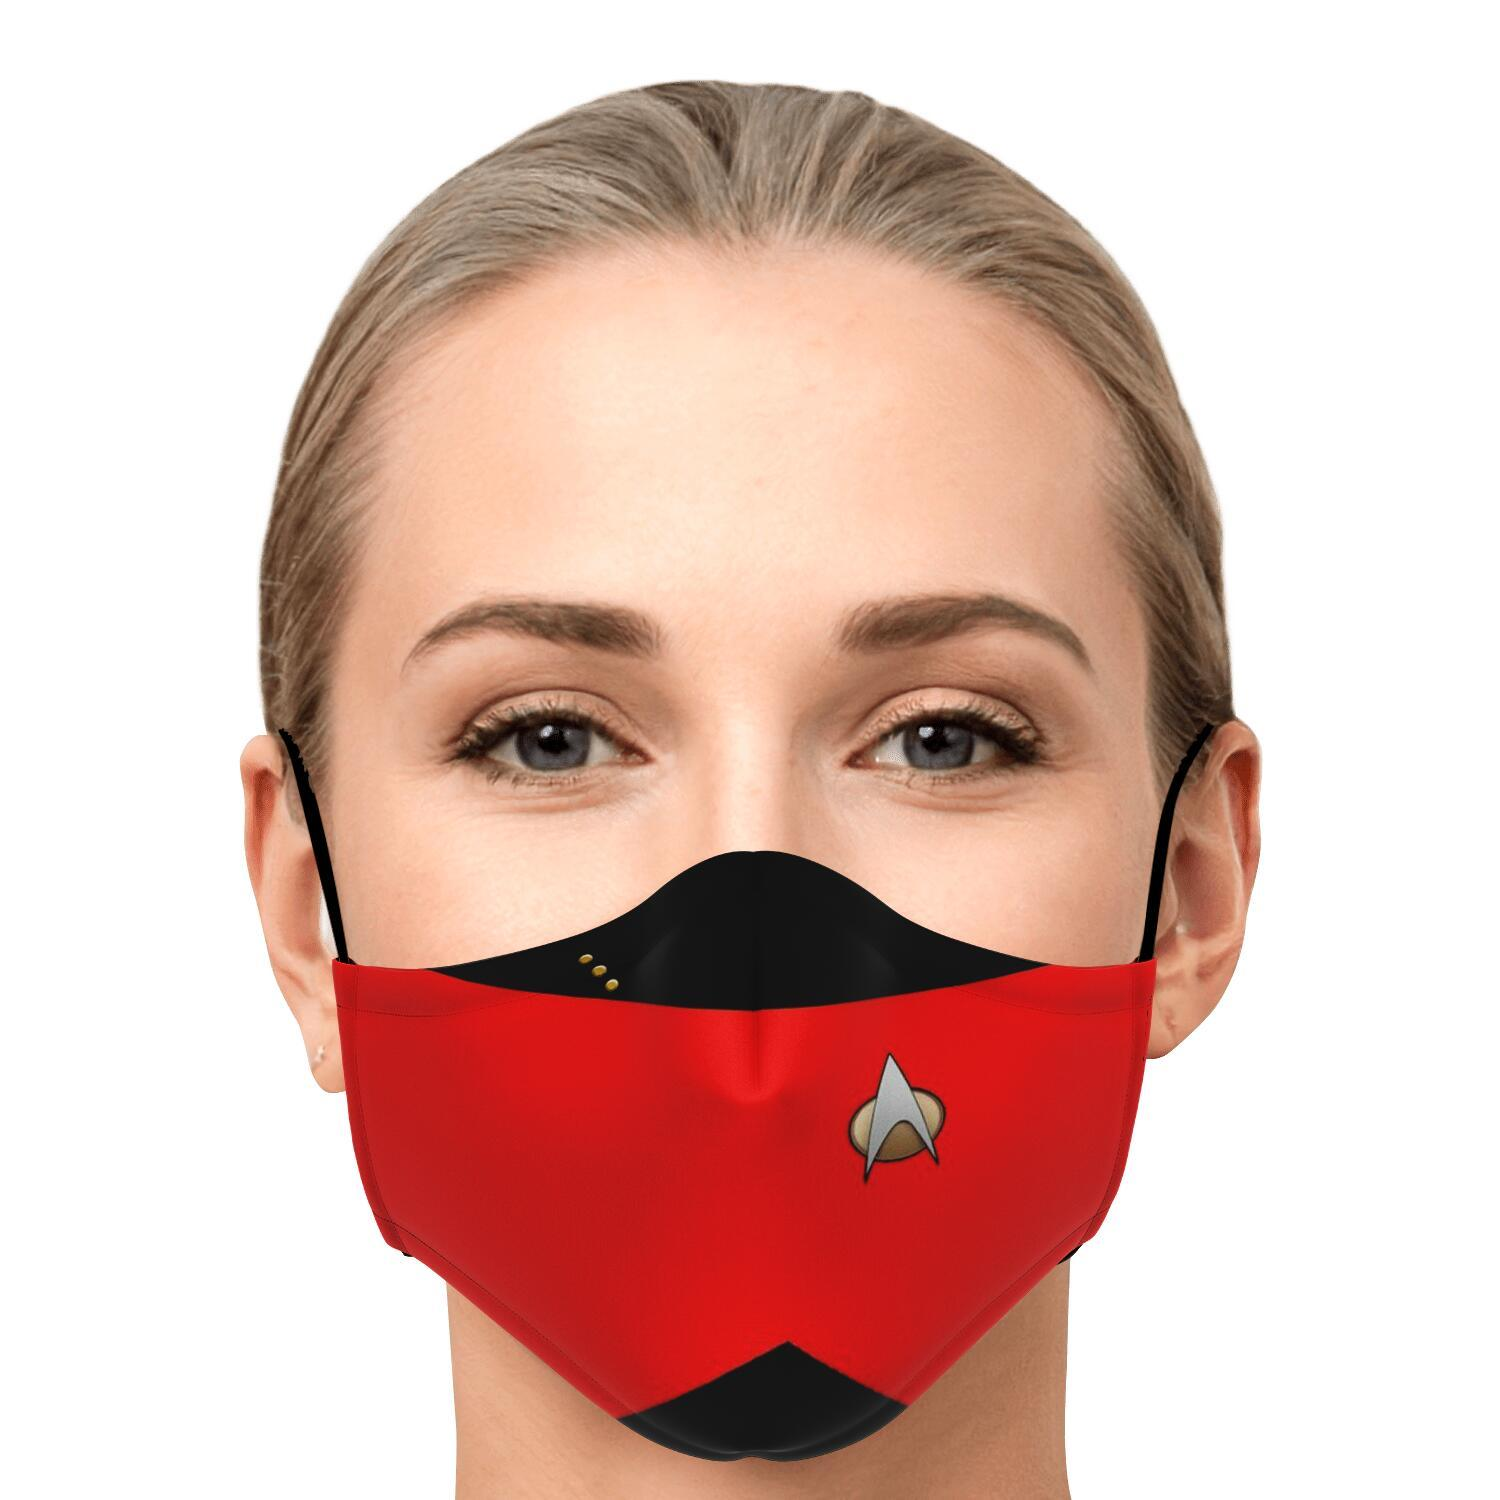 Star Trek Red Shirt Face Mask 1